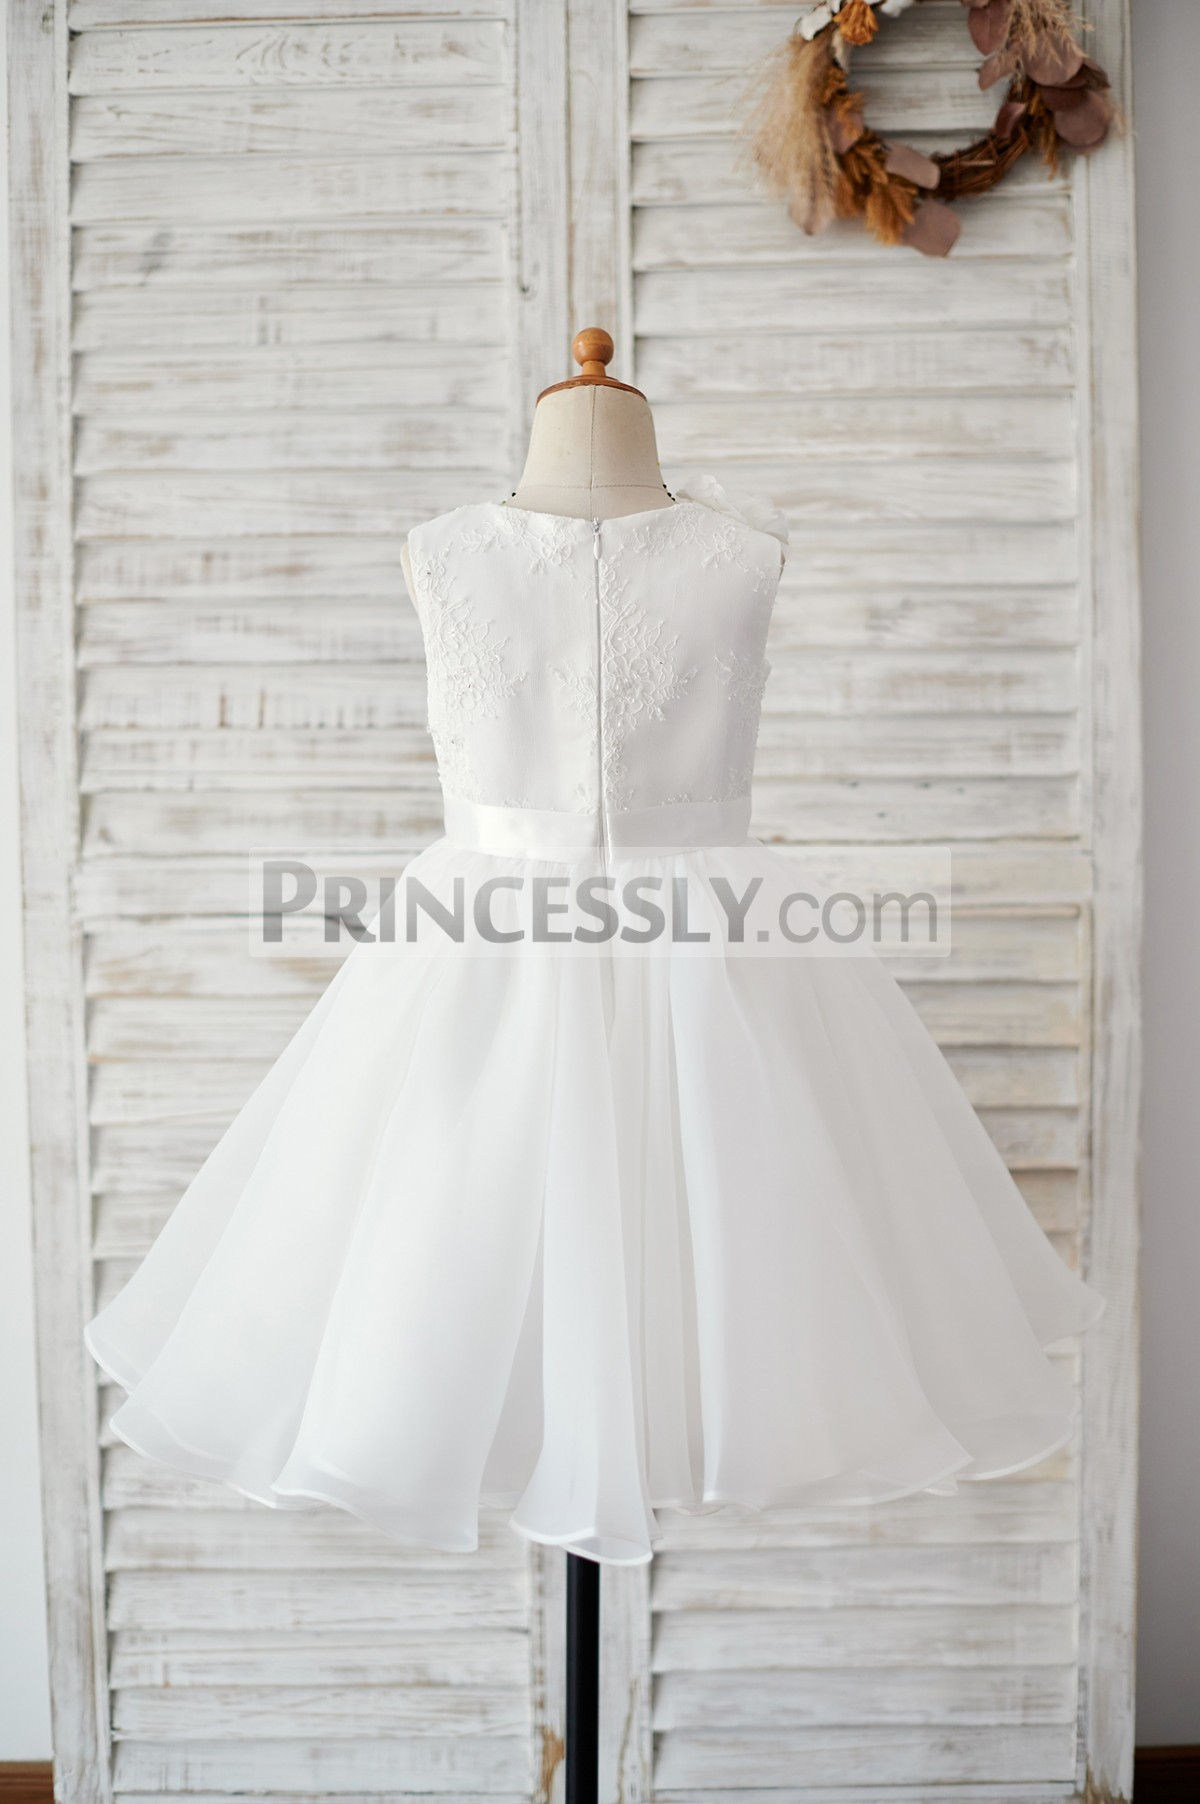 Lace organza ivory wedding baby girl dress